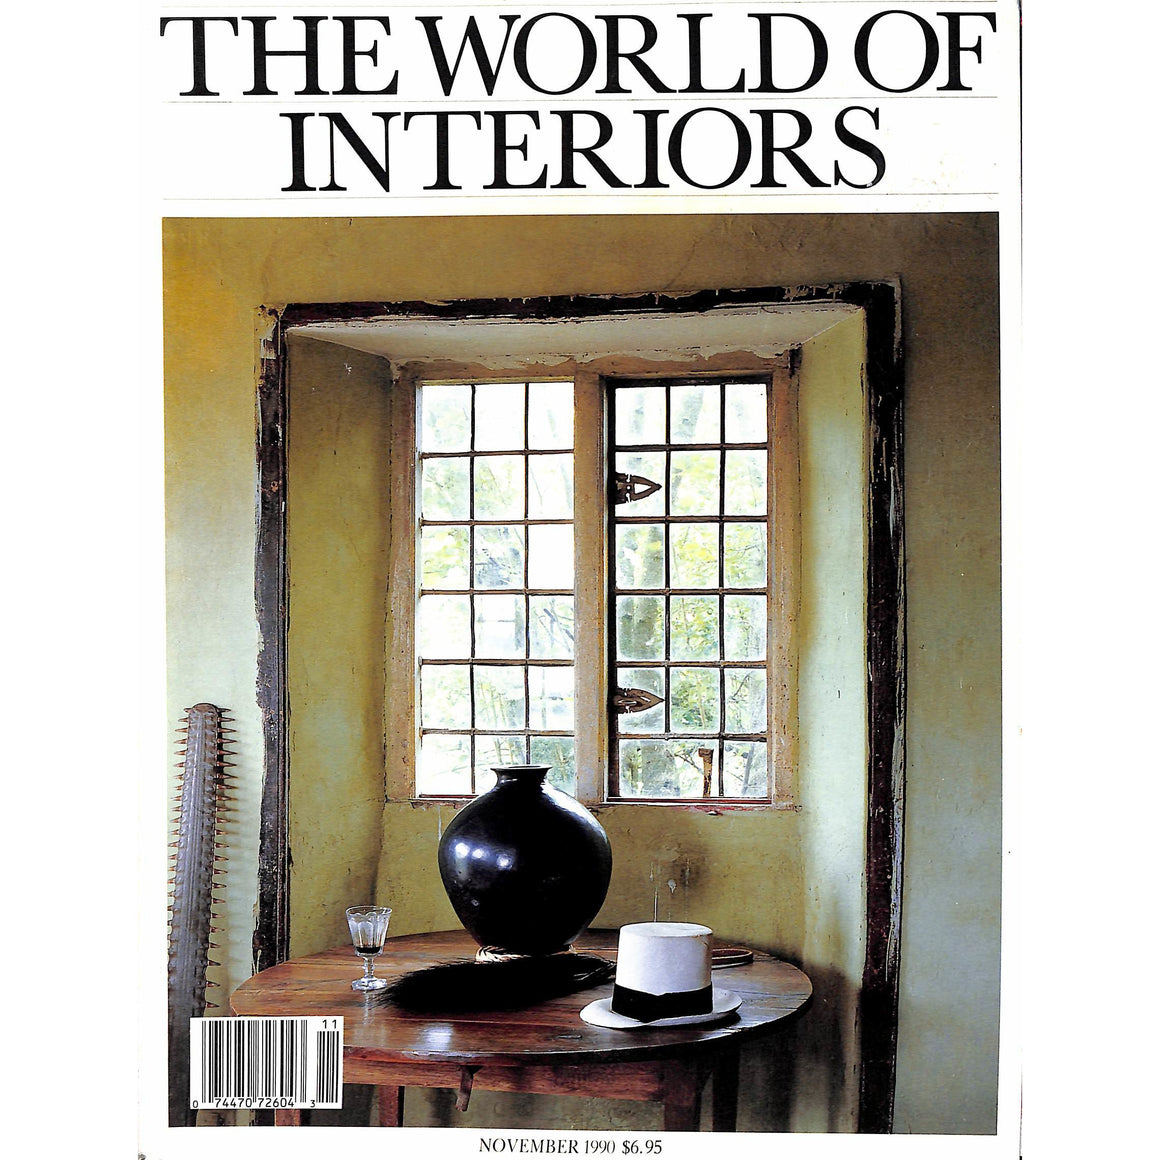 The World of Interiors November 1990